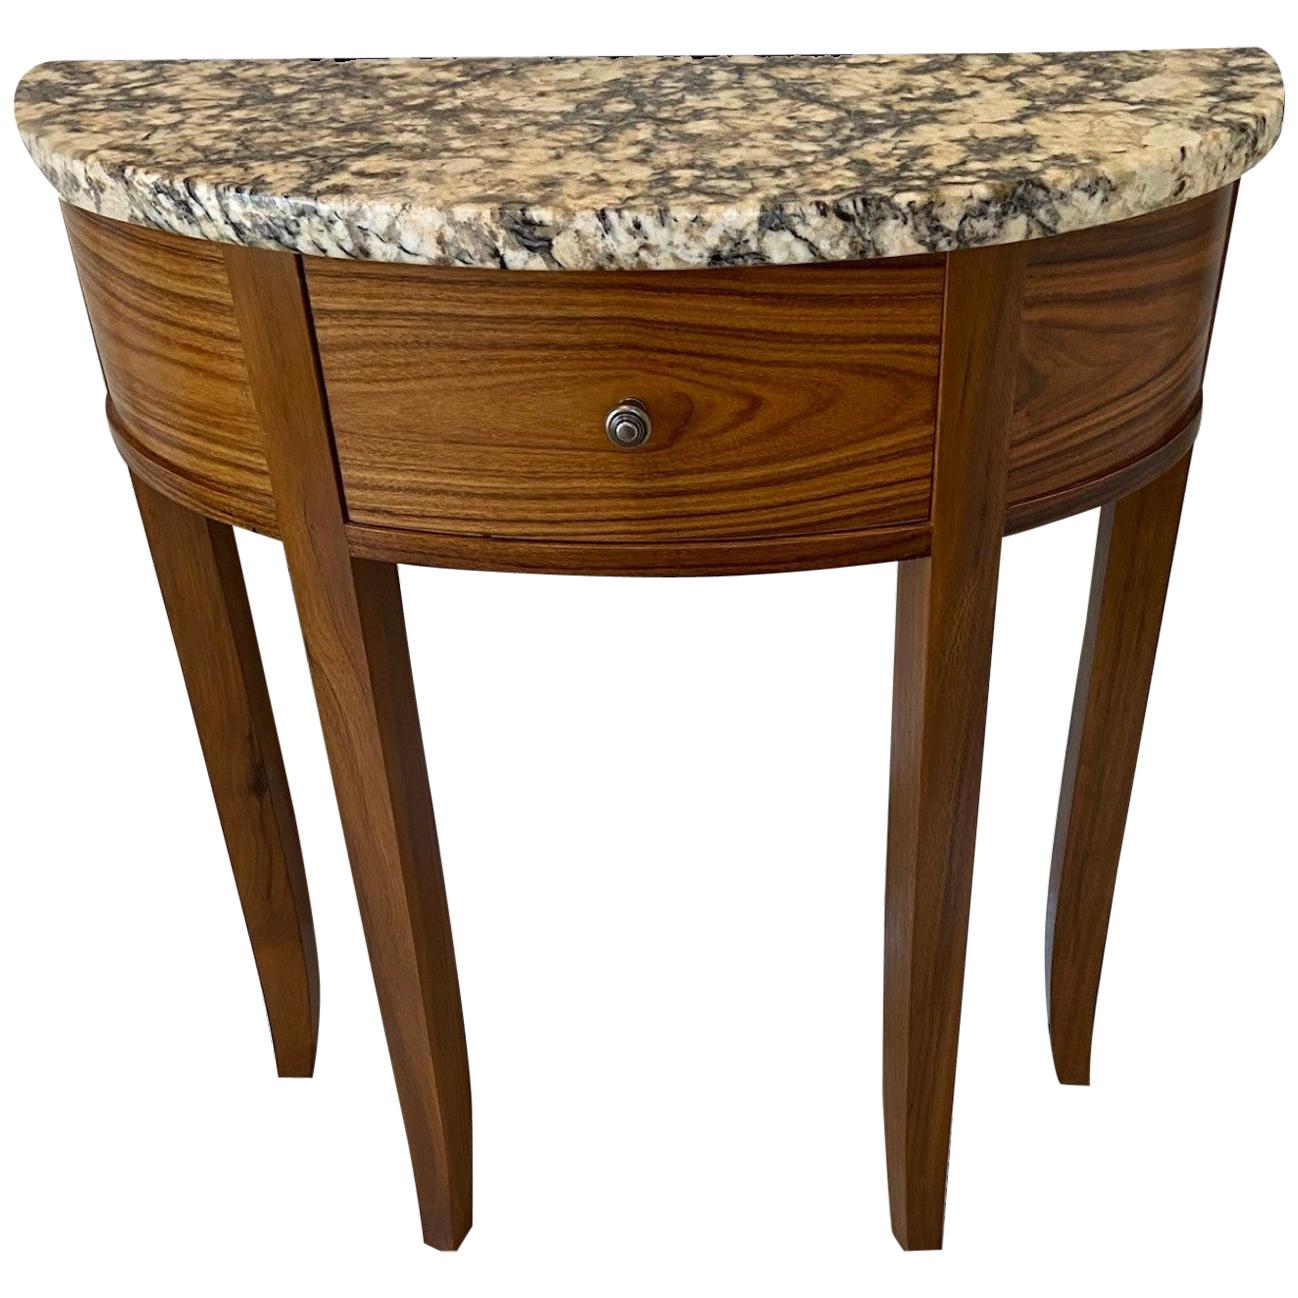 Demilune Table in Exotic Wood and Granite